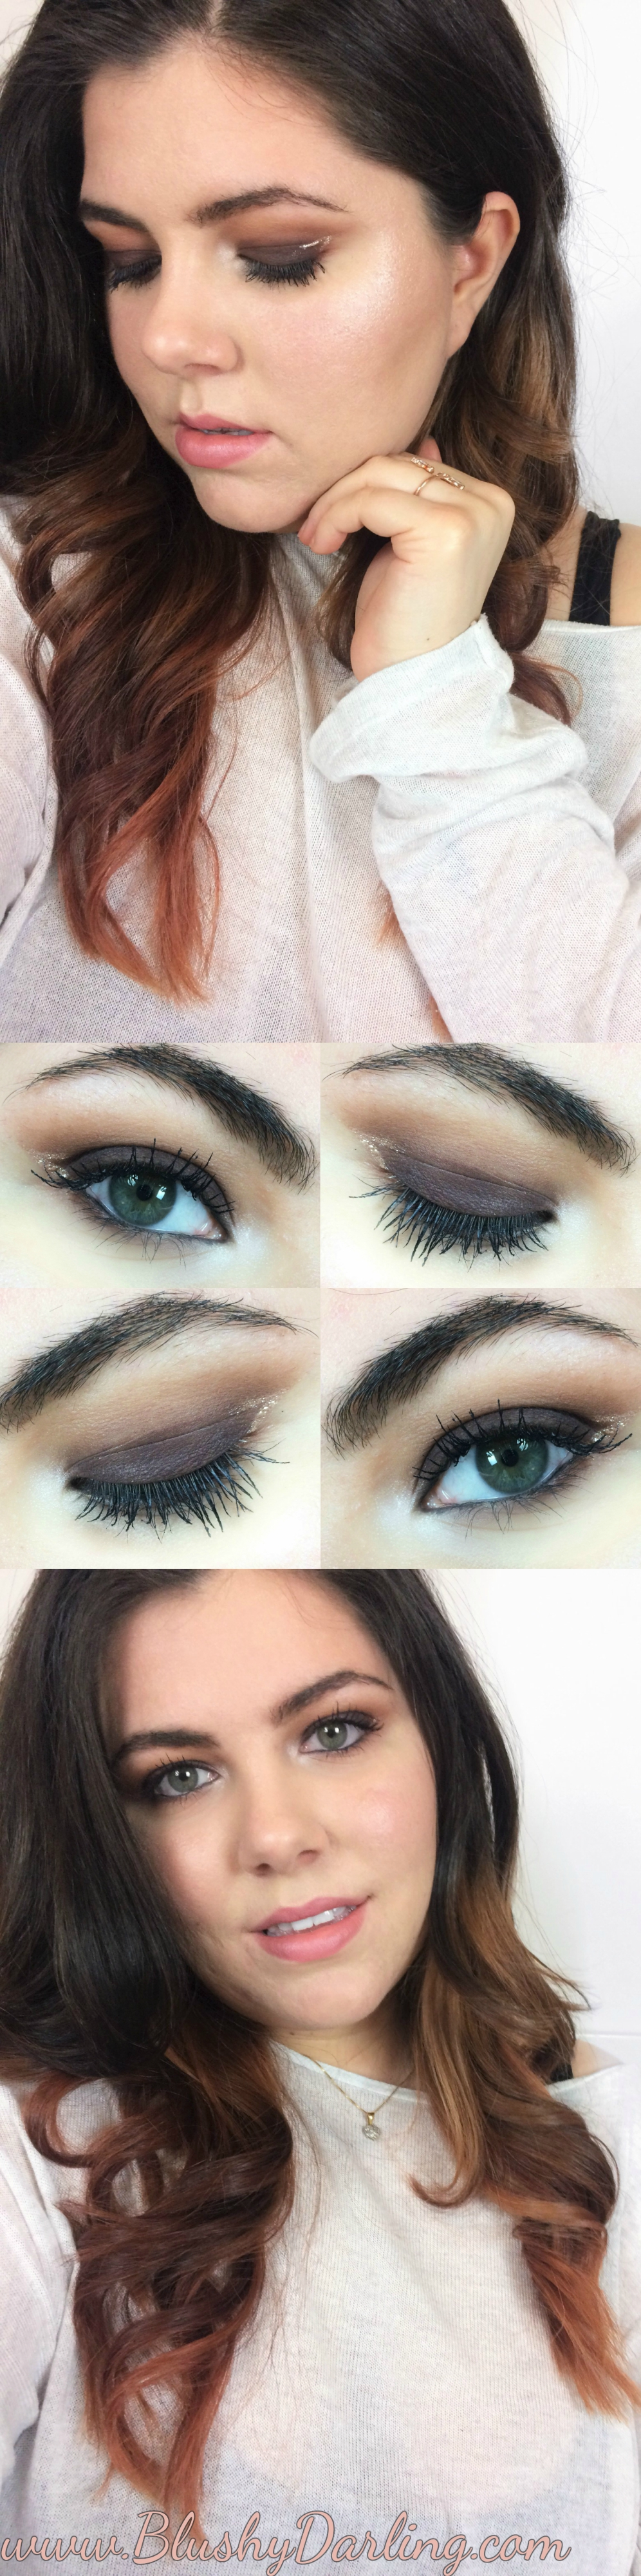 Learn how to create this warm toned smokey eye using the Naked Heat, grafic glittery liner and nude lips perfect for a fun festival or a night out